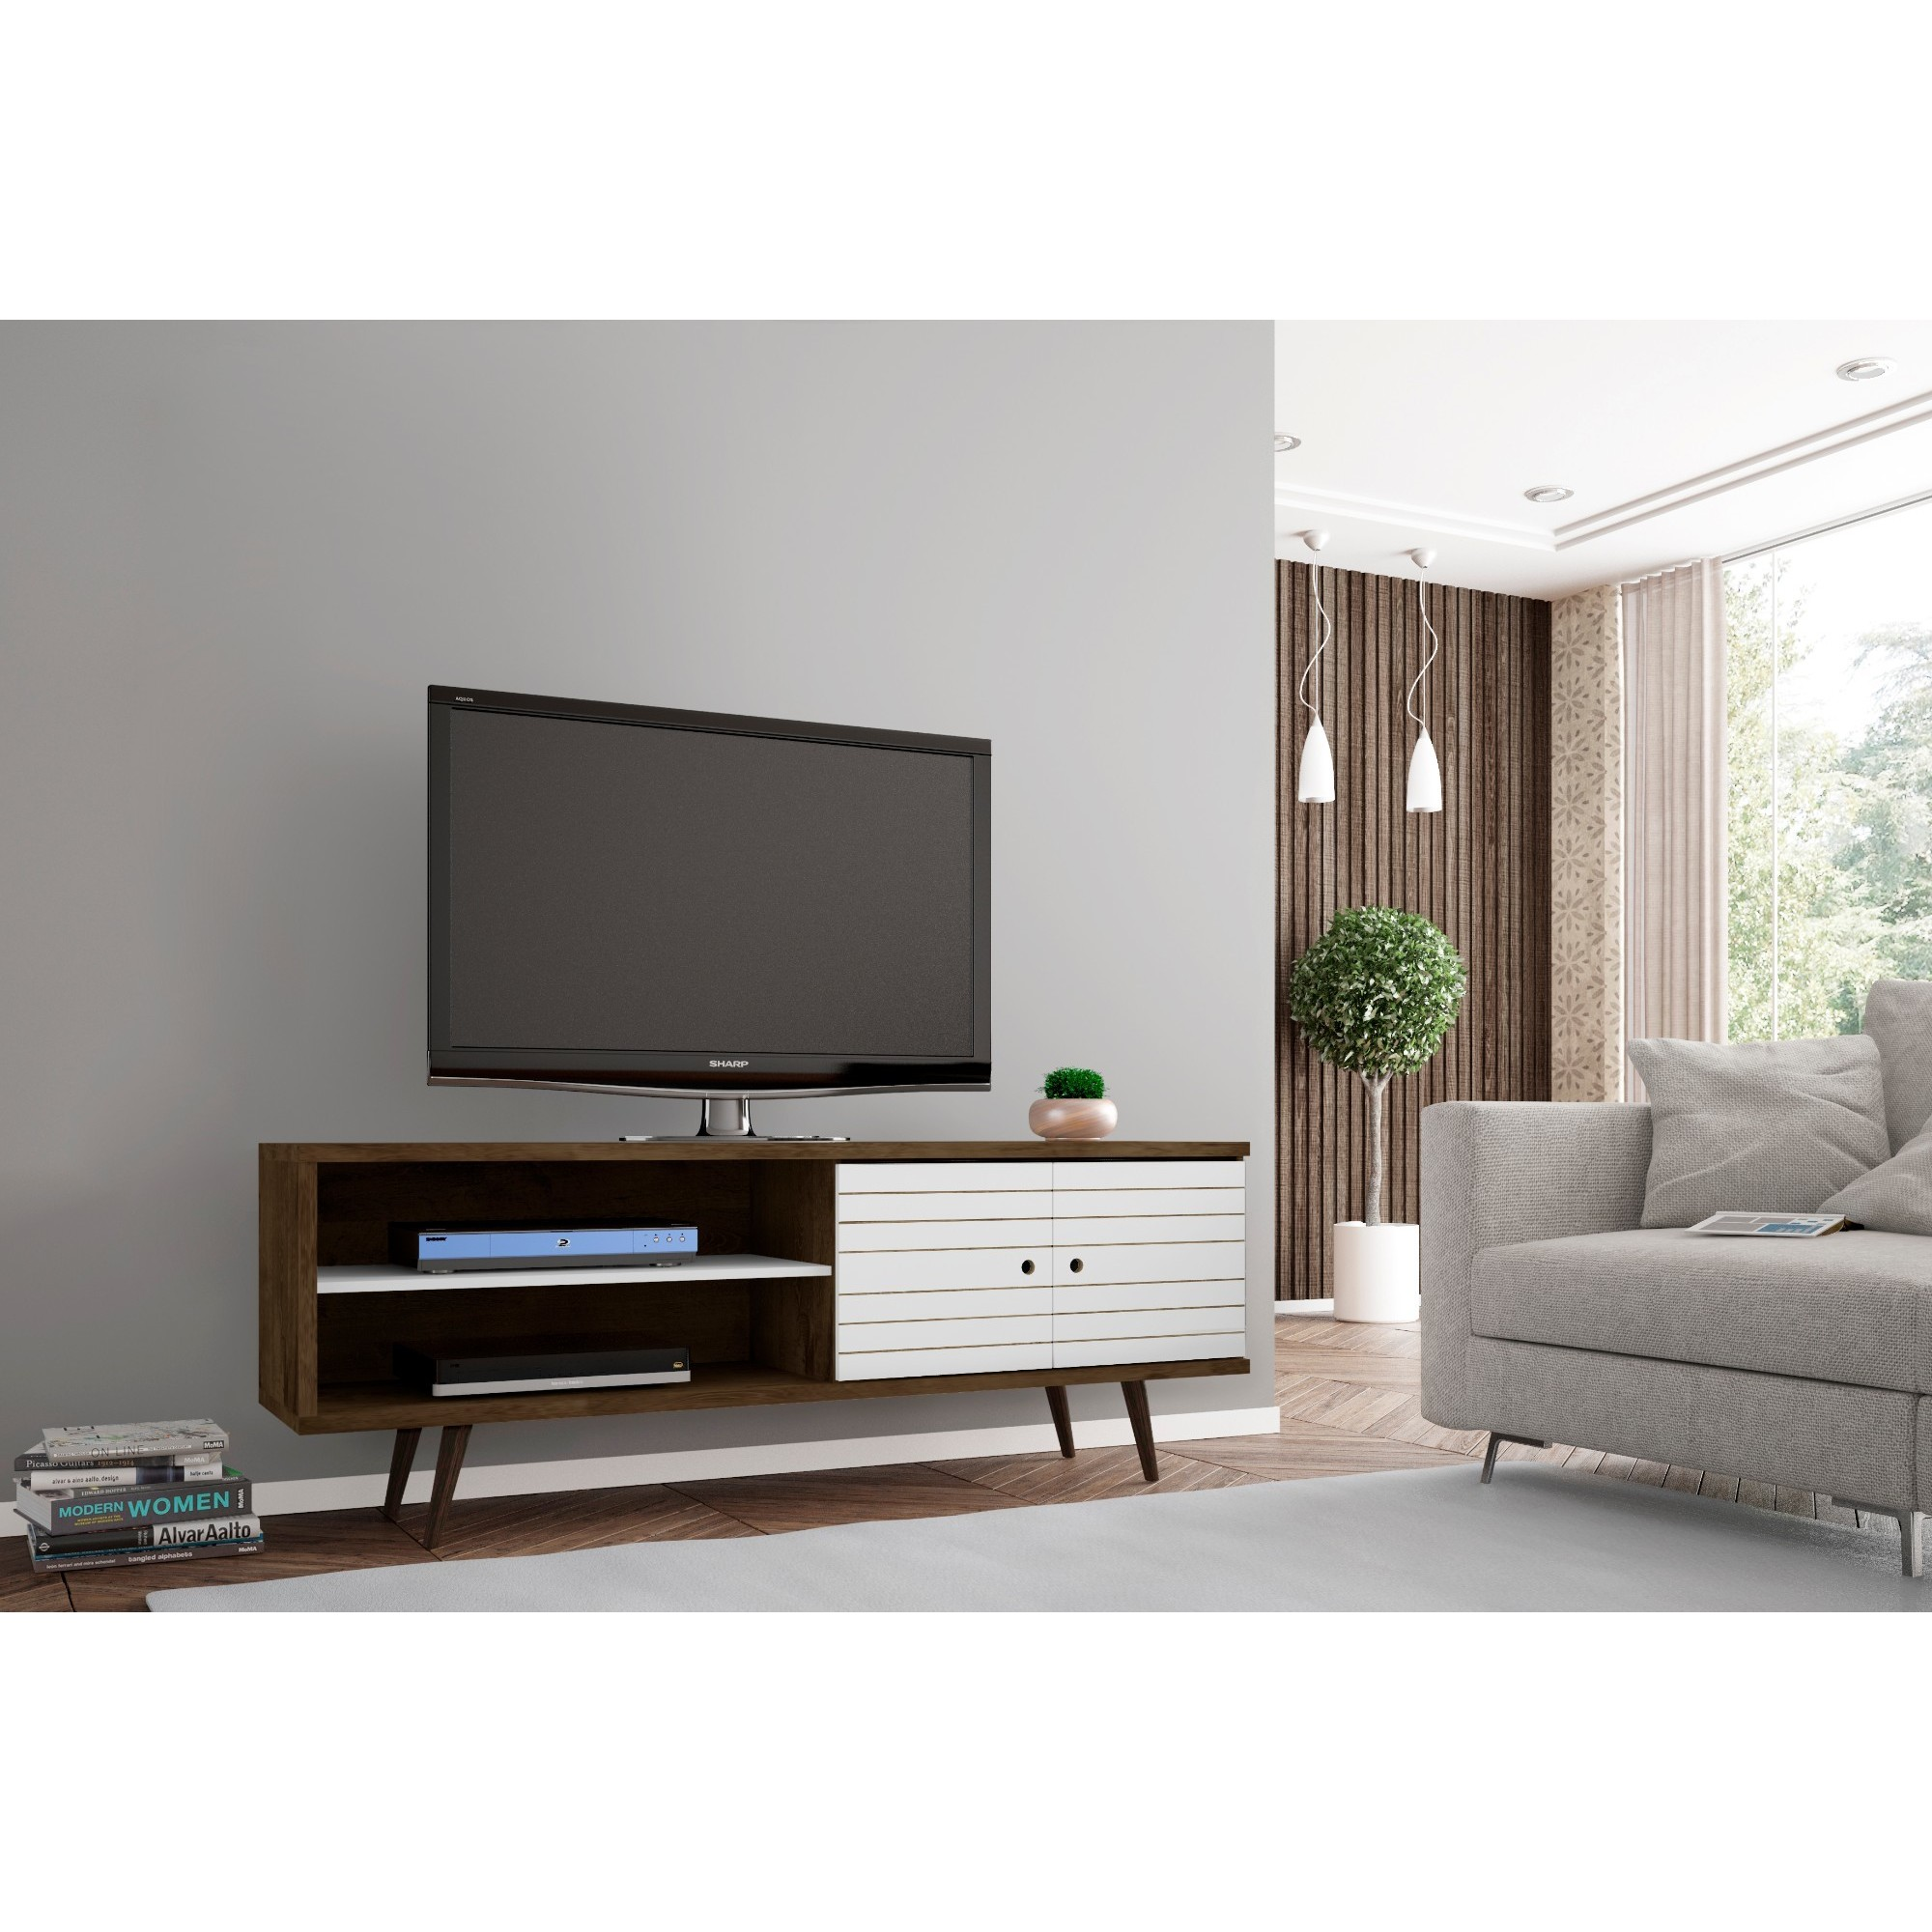 Shop carson carrington sortland wooden modern tv stand free shipping today overstock 22751405